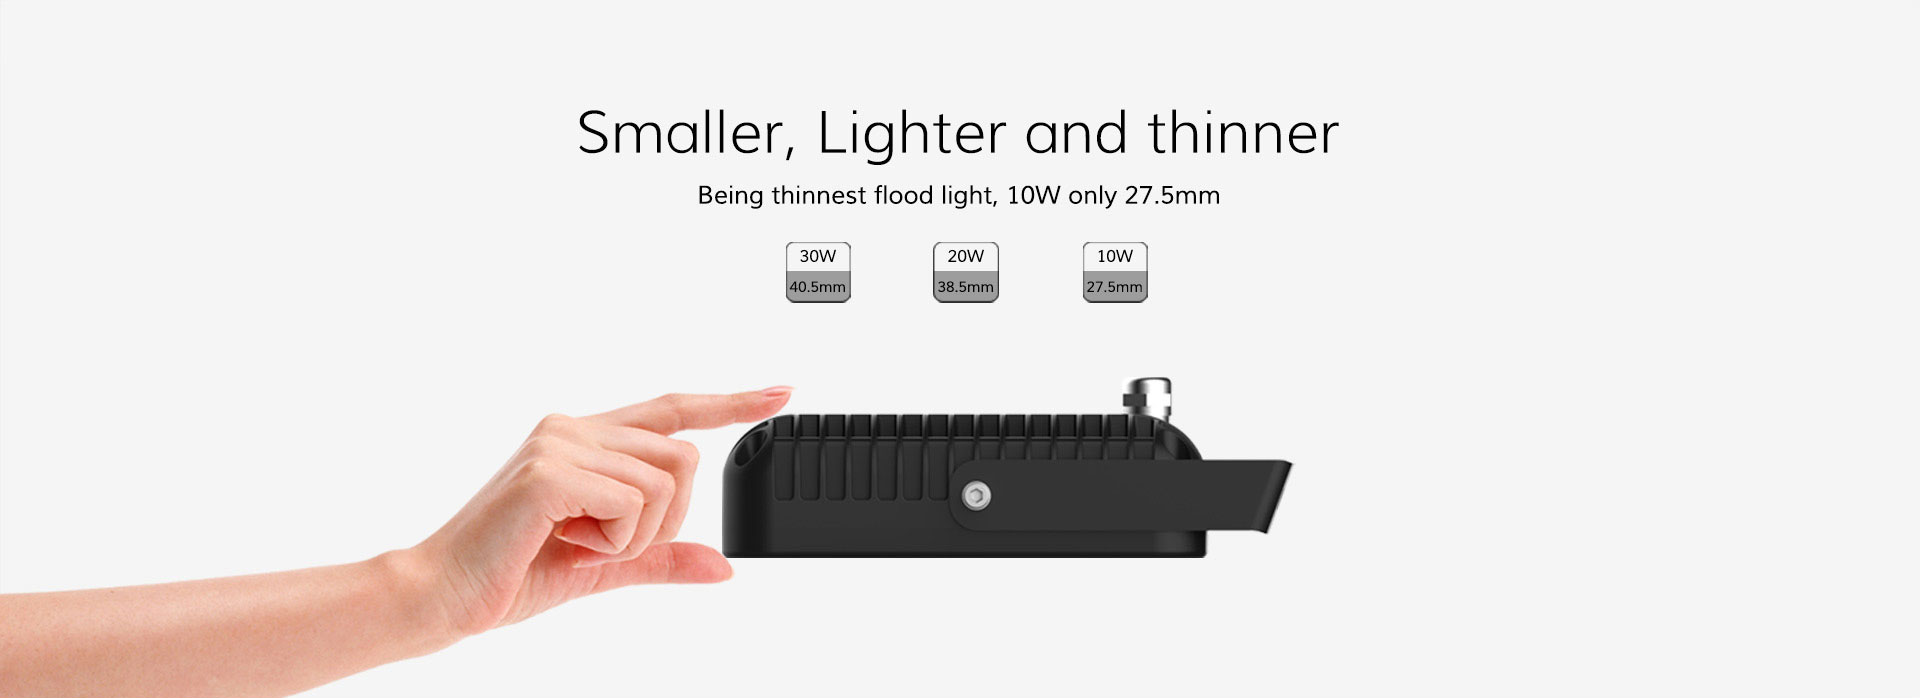 HiCover Ⅲ Smaller, Lighter and thinner